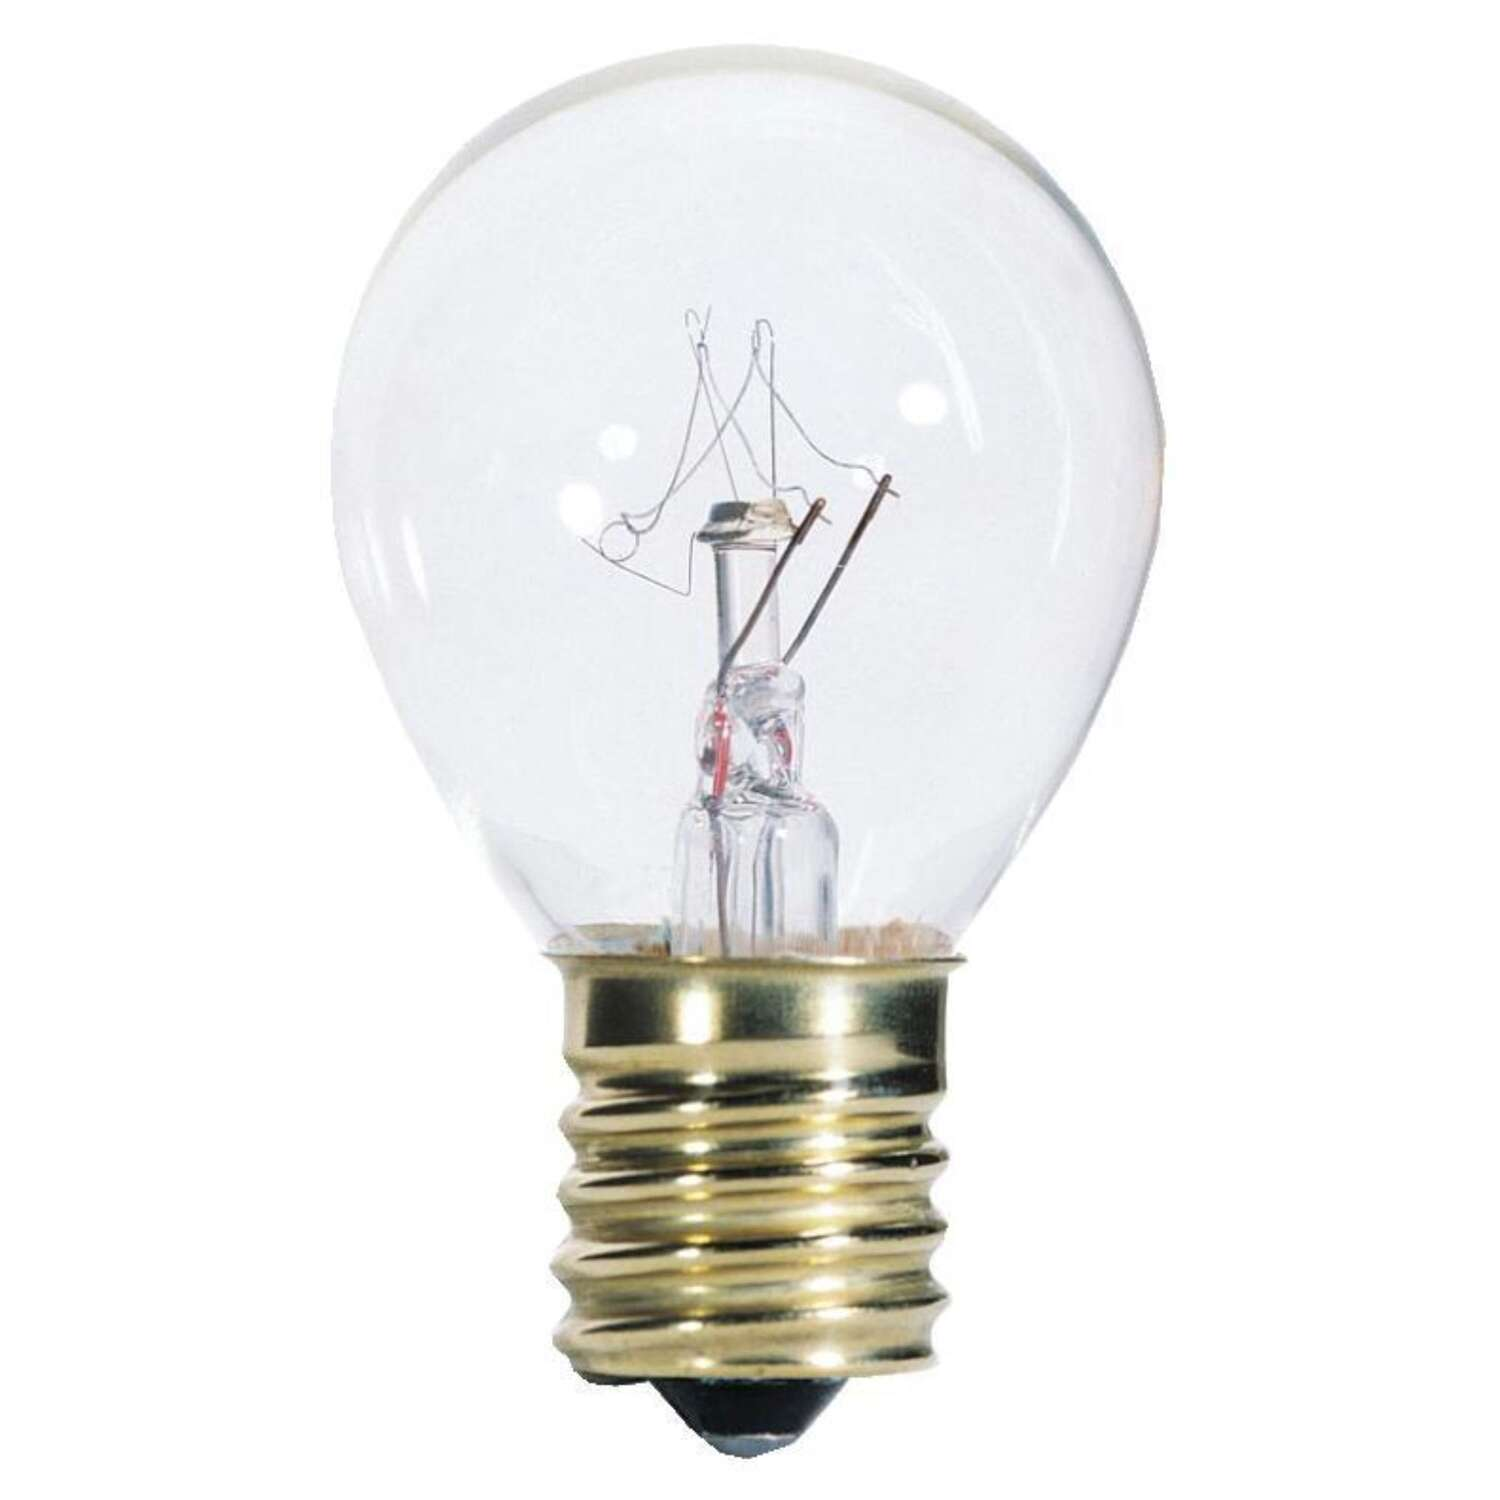 Westinghouse  25 watts S11  Speciality  Incandescent Bulb  E17 (Intermediate)  White  1 pk